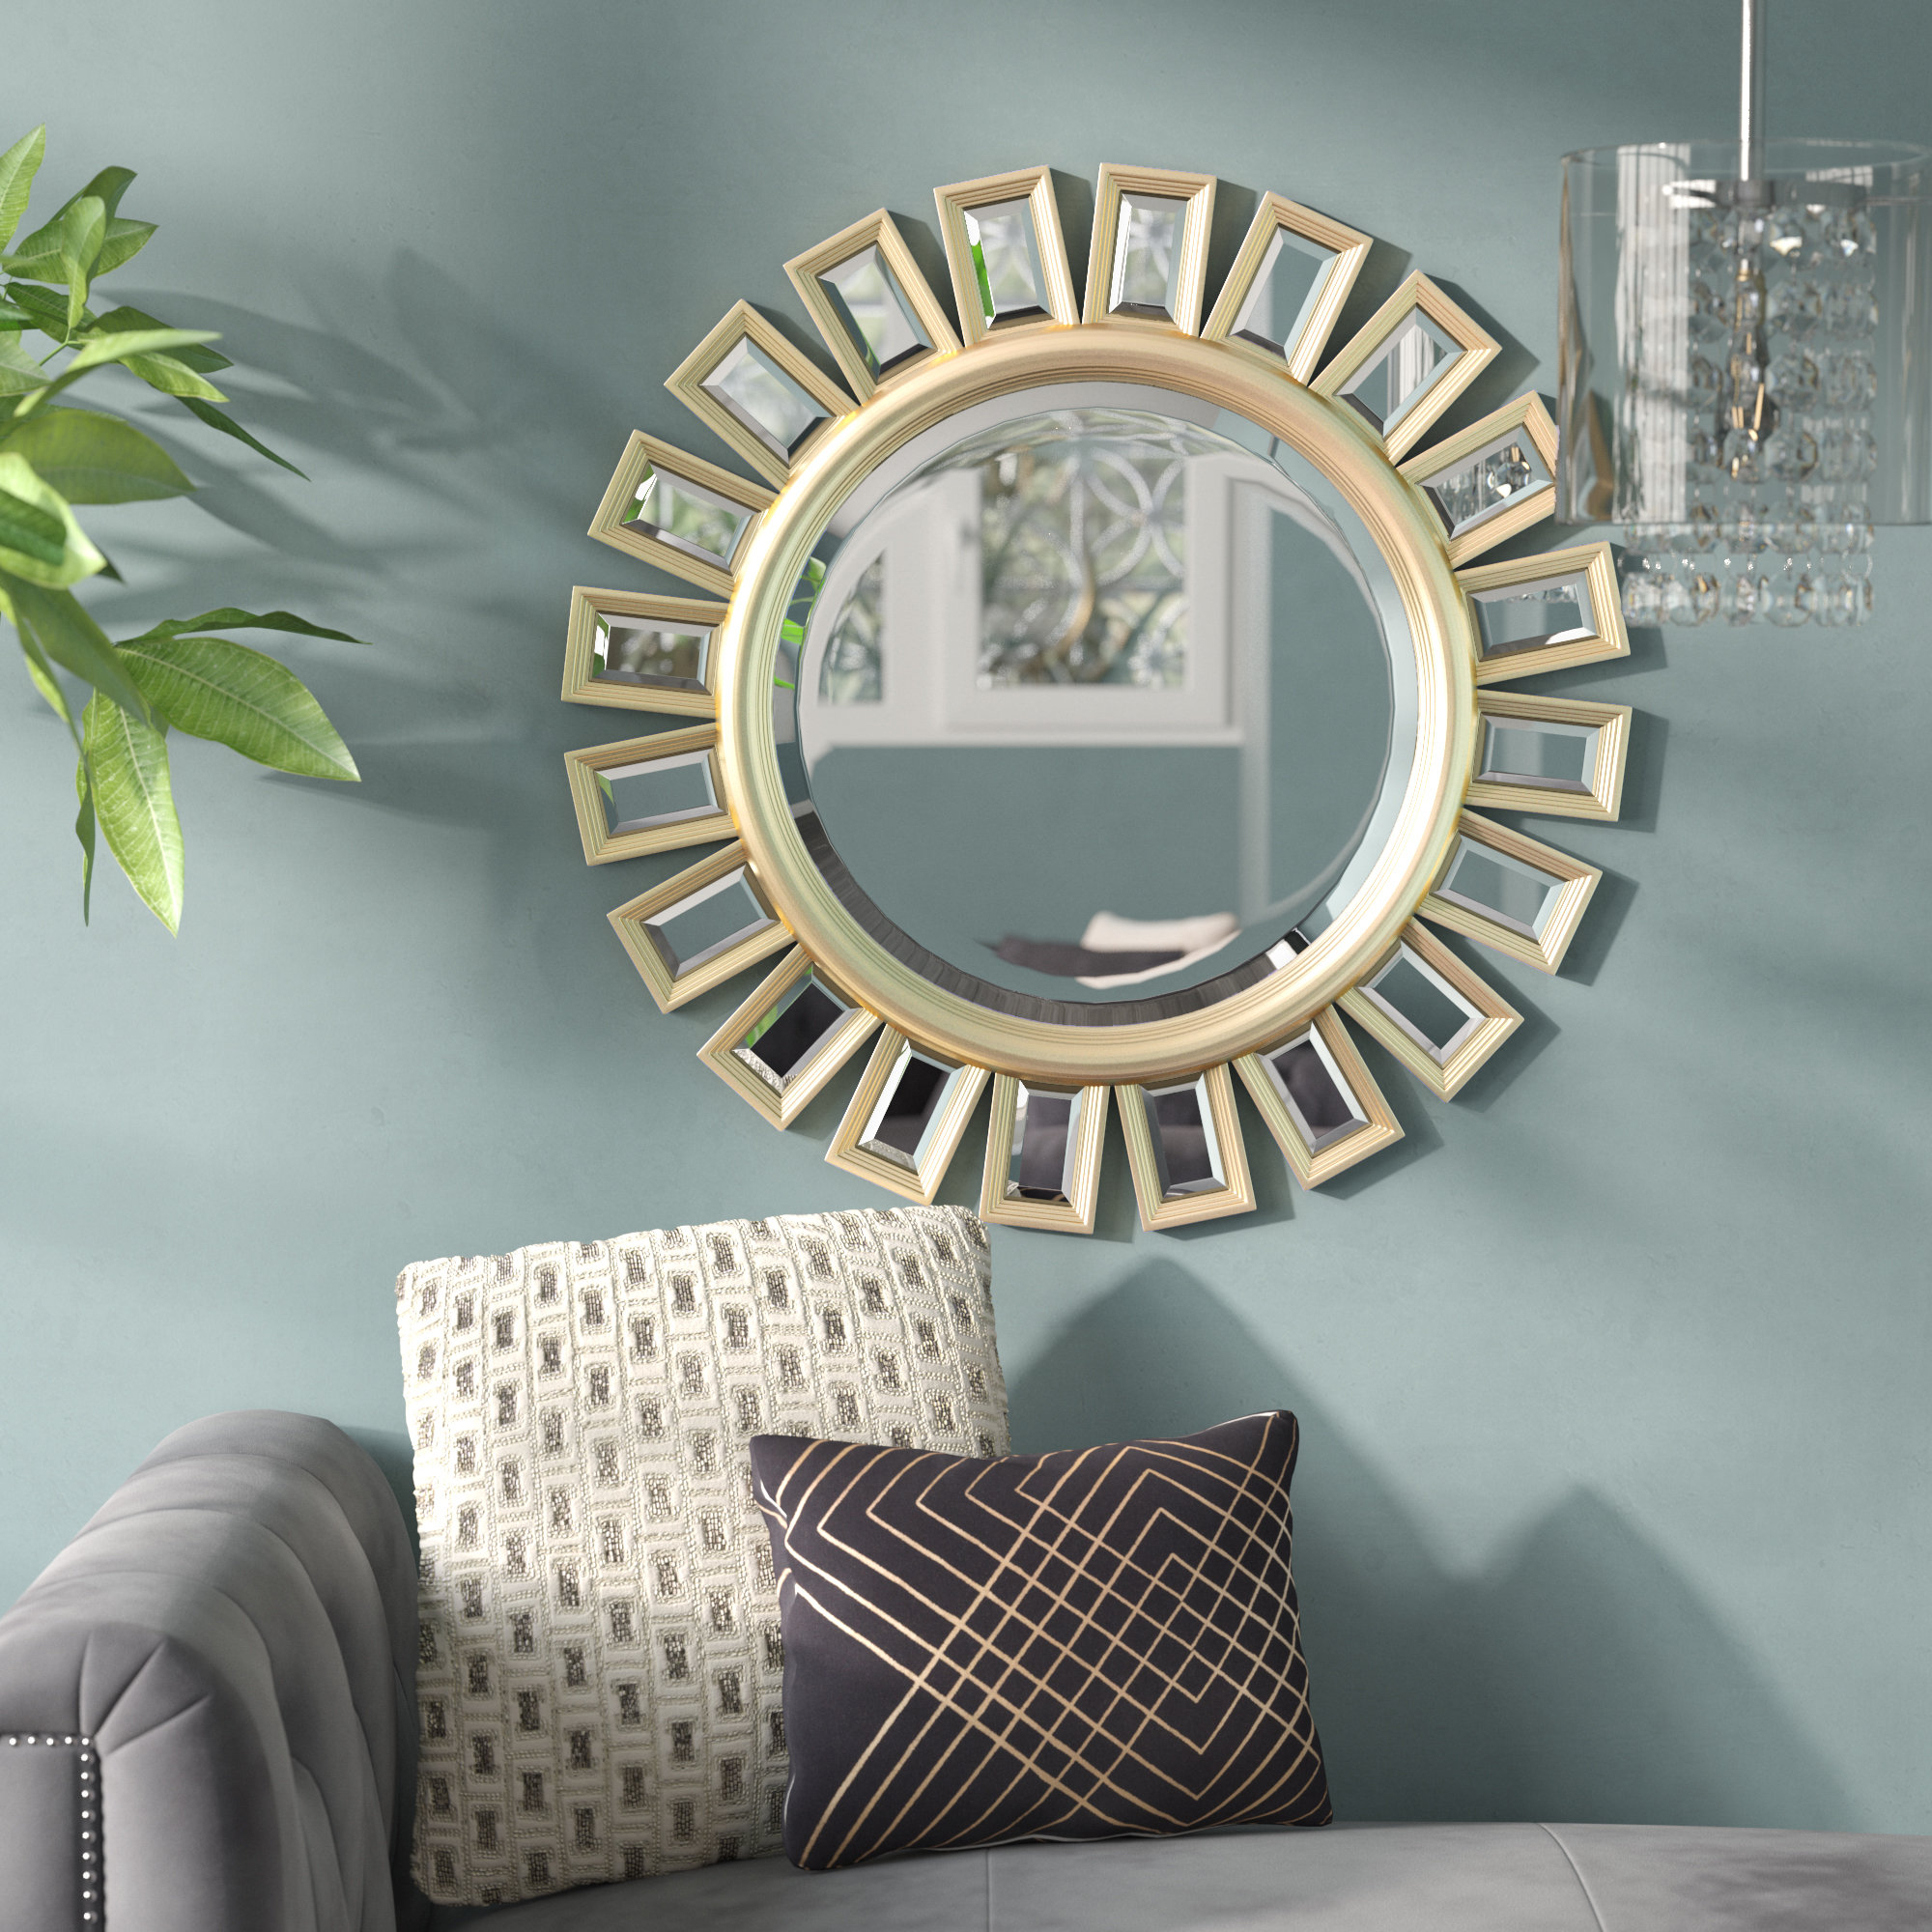 Sunburst Beveled Wall Mirror With Starburst Wall Decor By Willa Arlo Interiors (View 16 of 30)